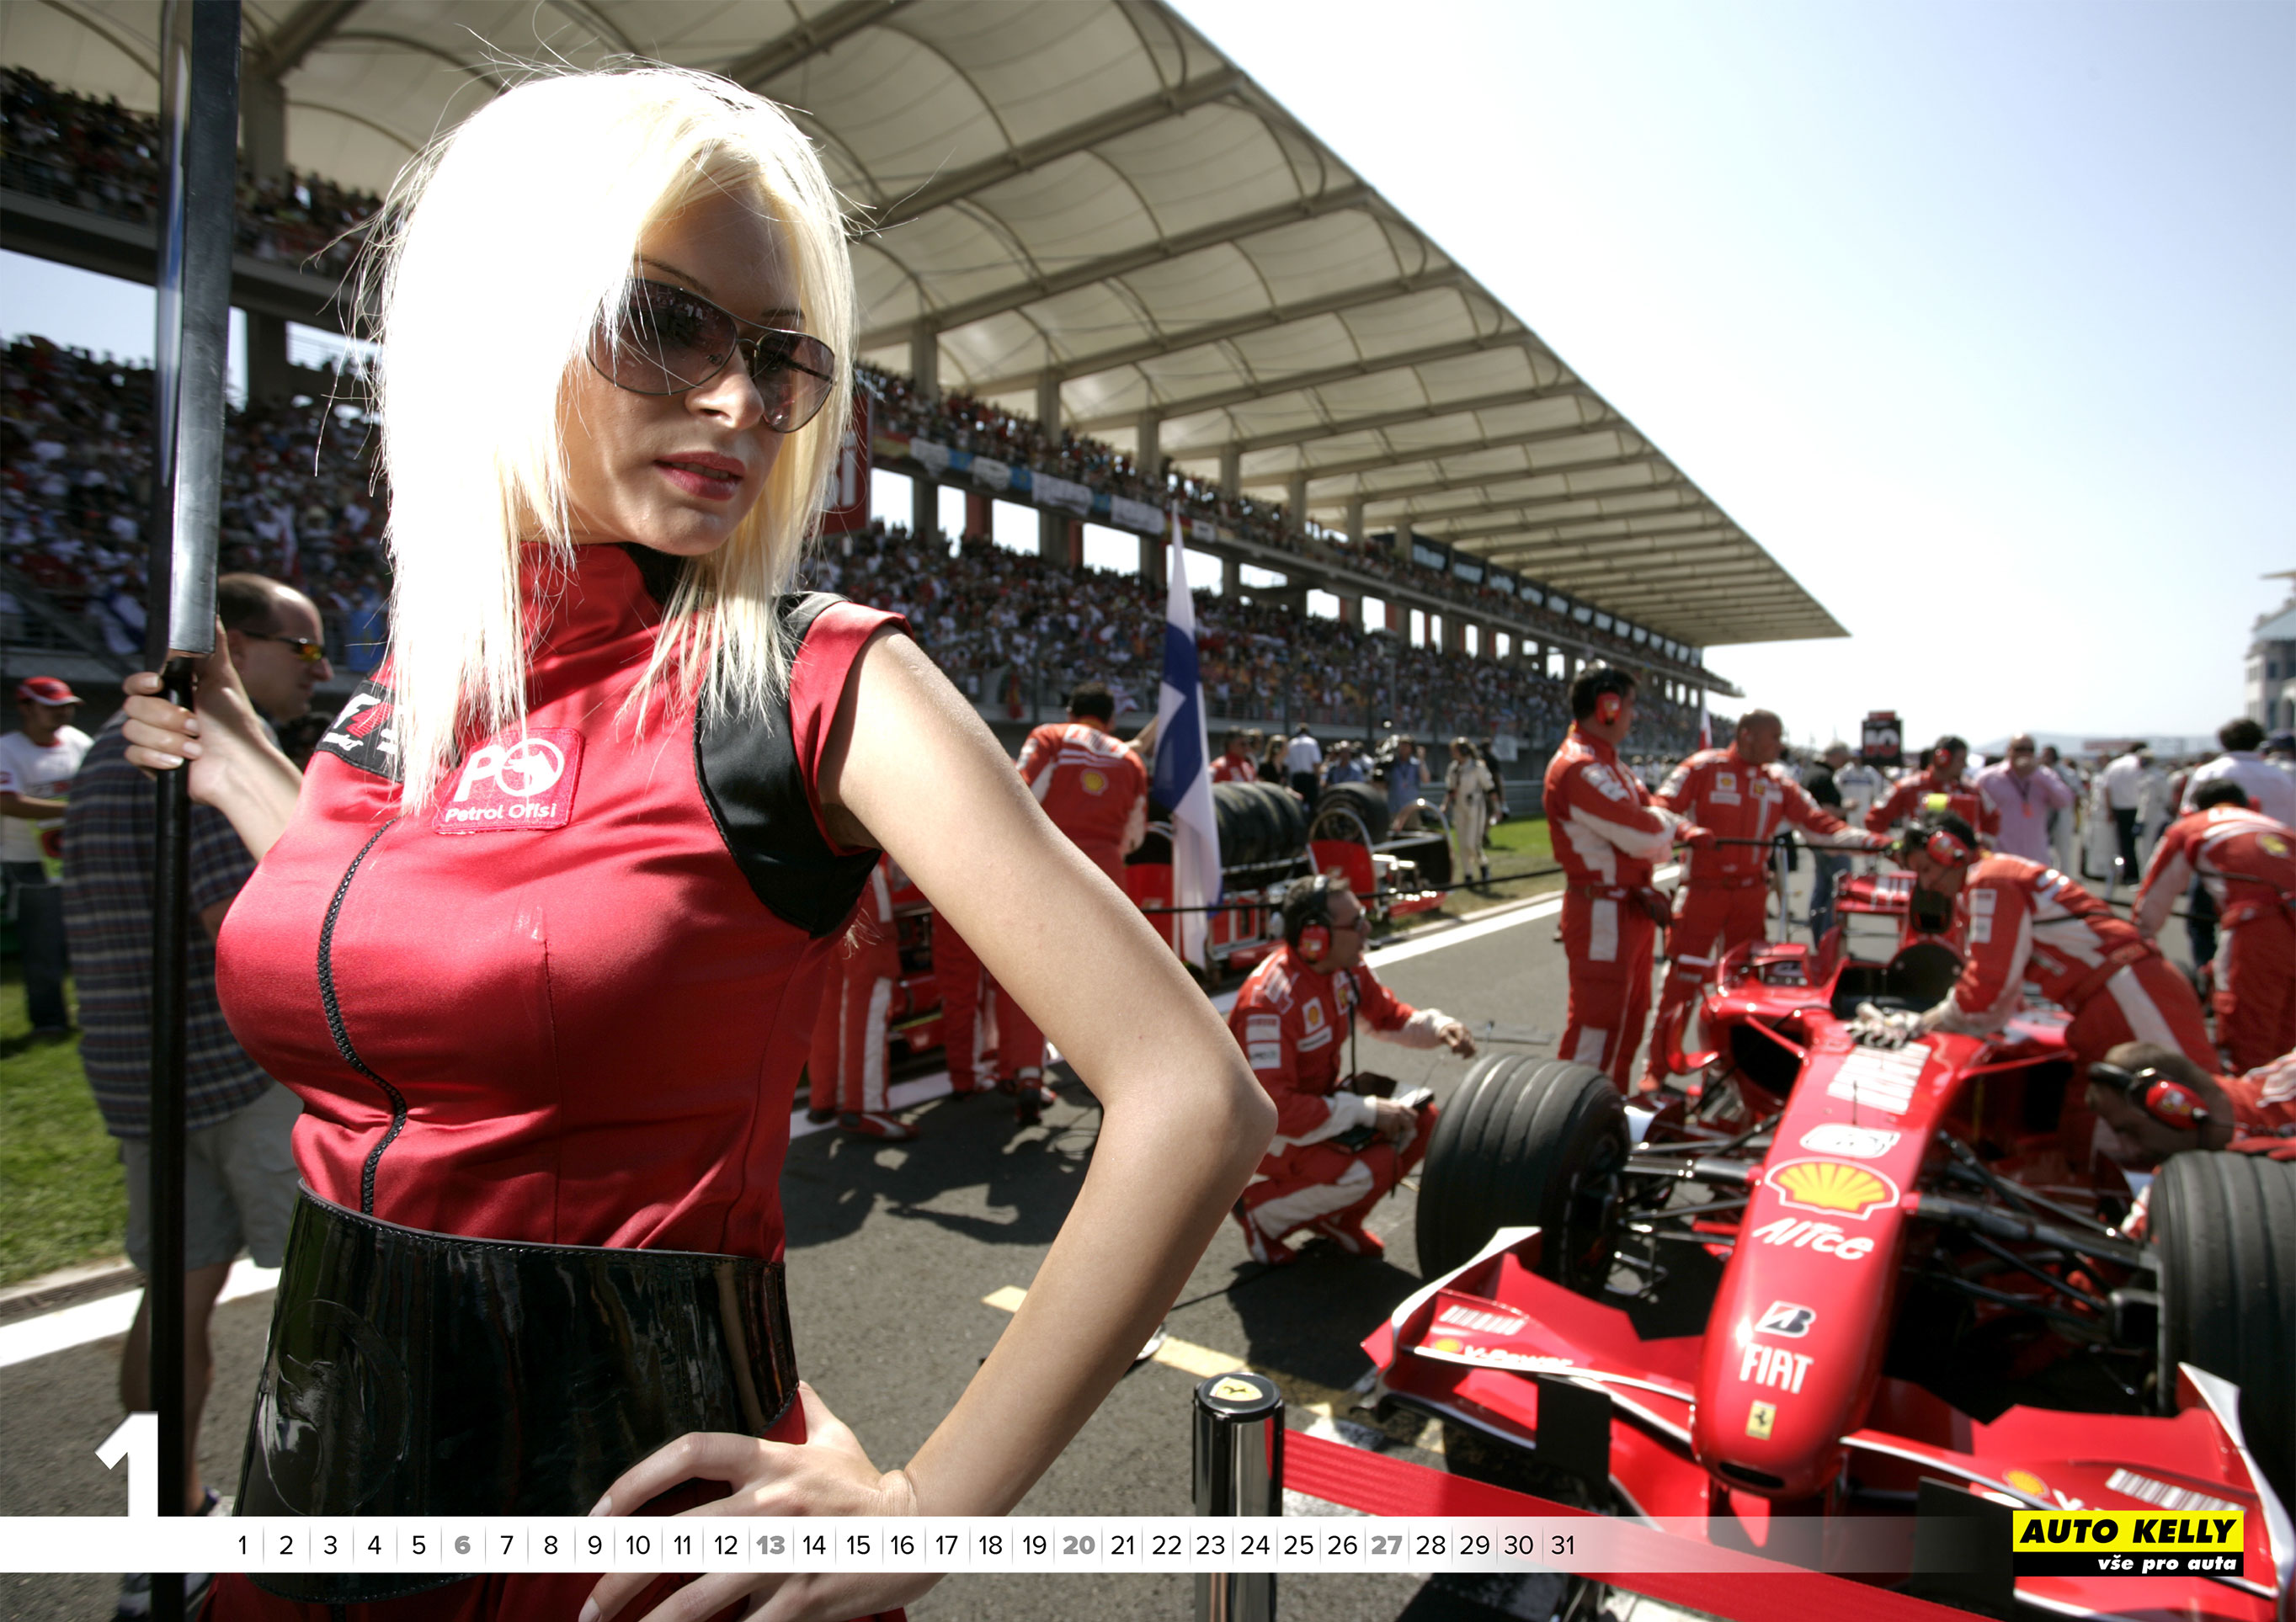 cheerleader / grid girls - Auto Kelly 2019 calendar